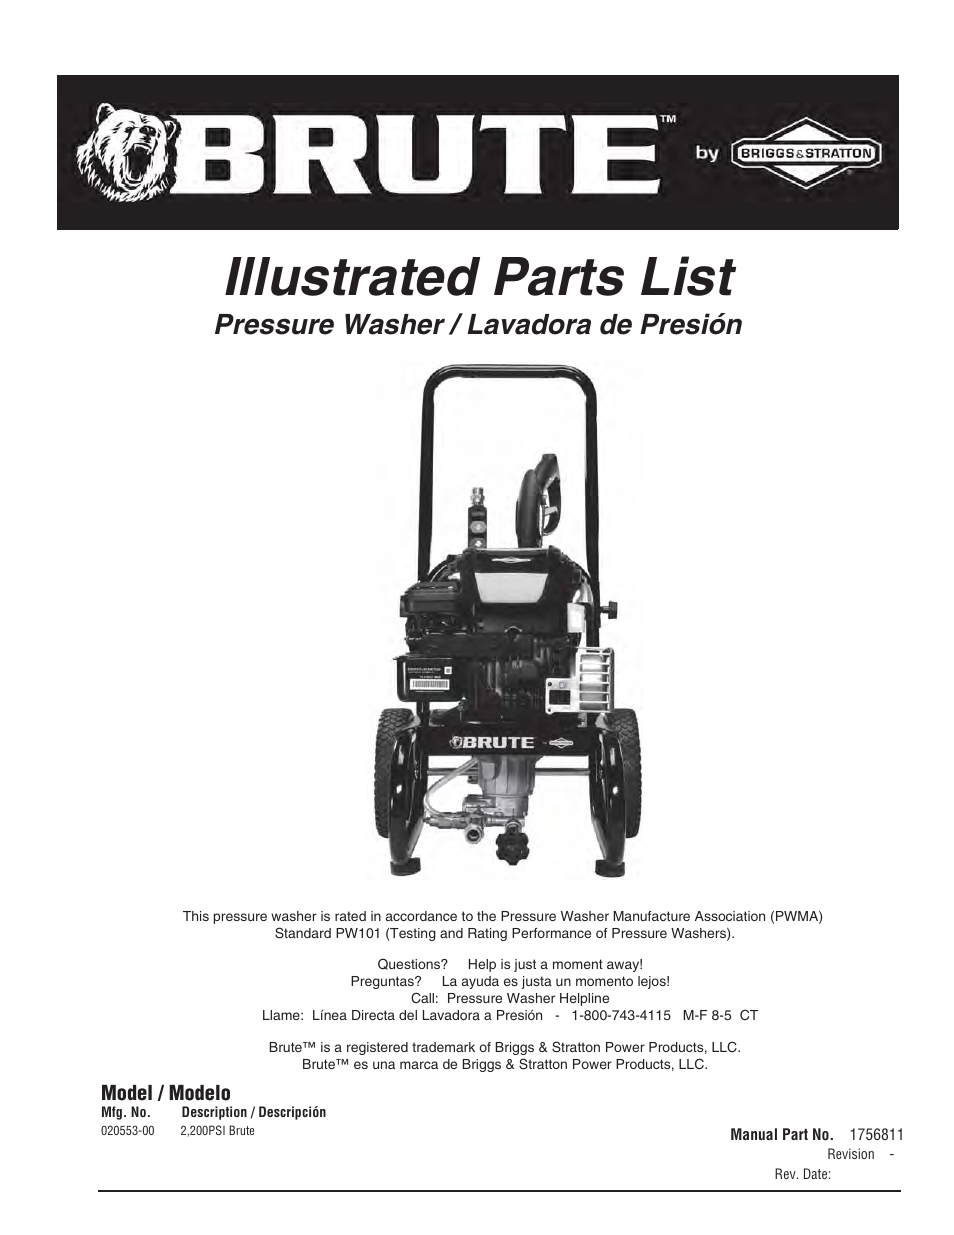 Brute 2200 Psi Pressure Washer User Manual 8 Pages Briggs And Stratton Engine Diagram Parts List For